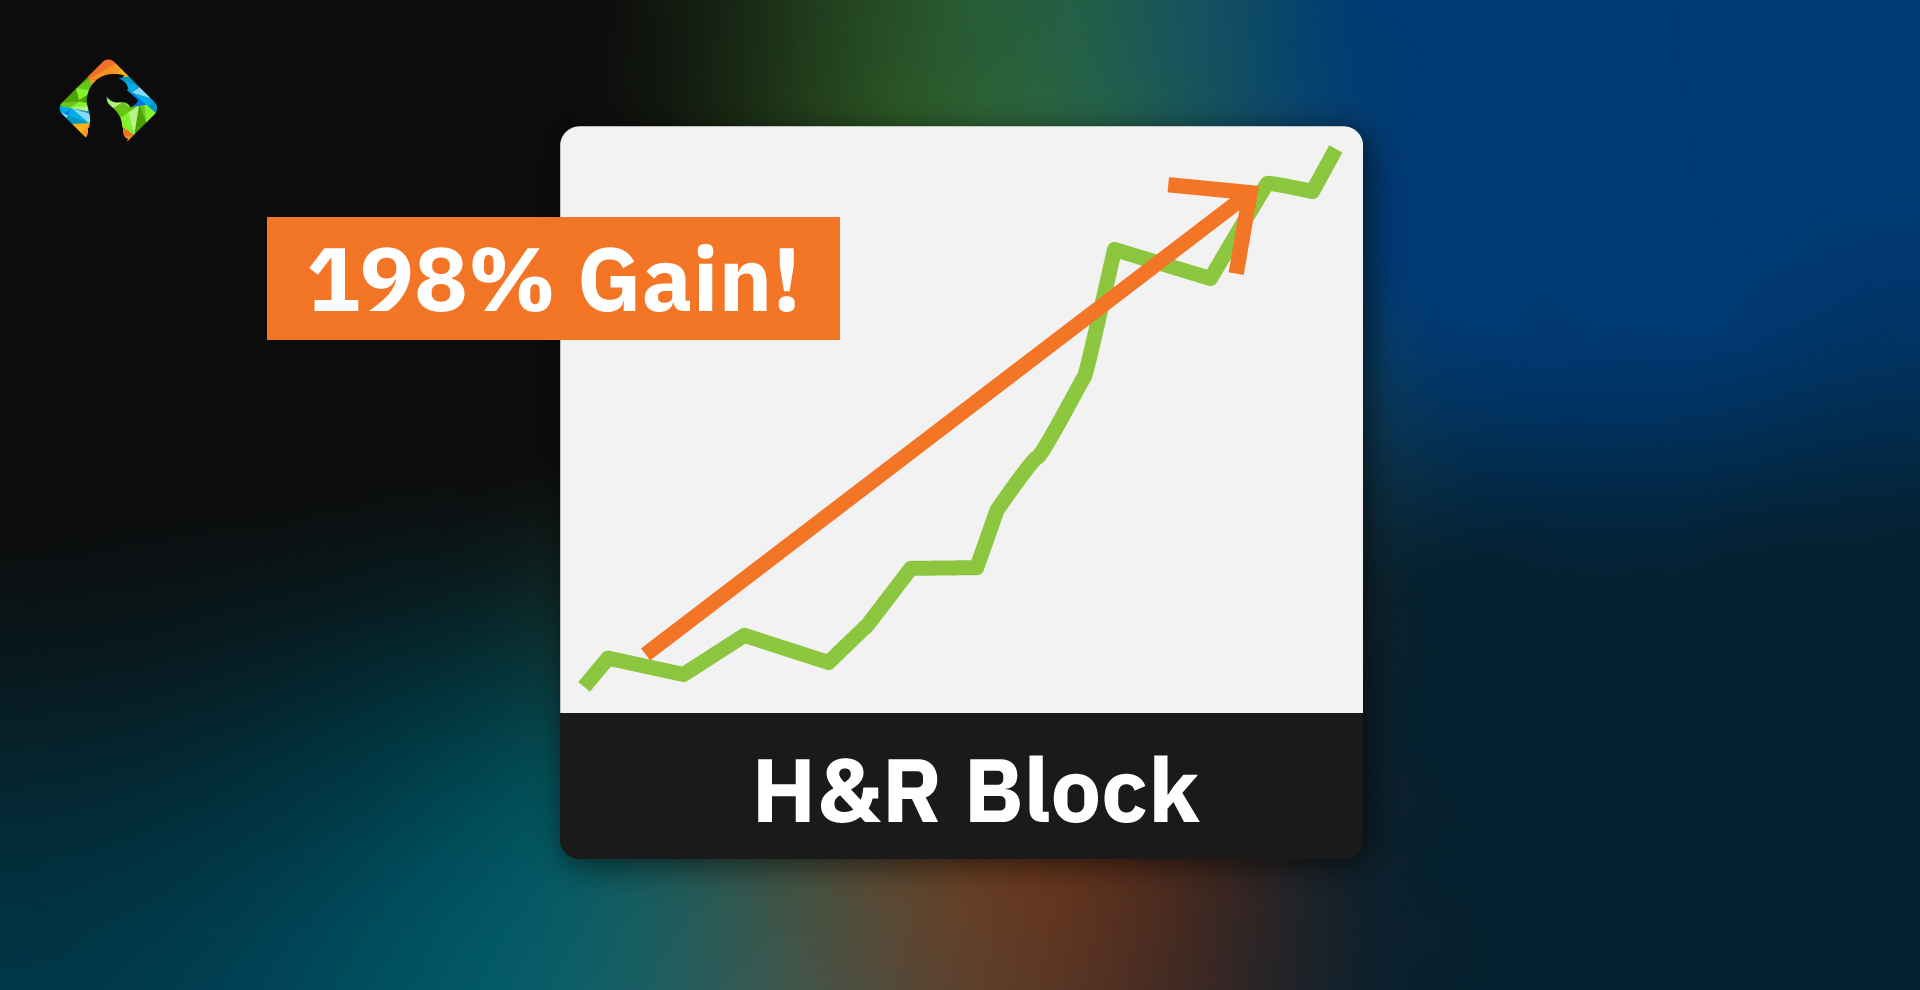 H&R Block Gain of 198%